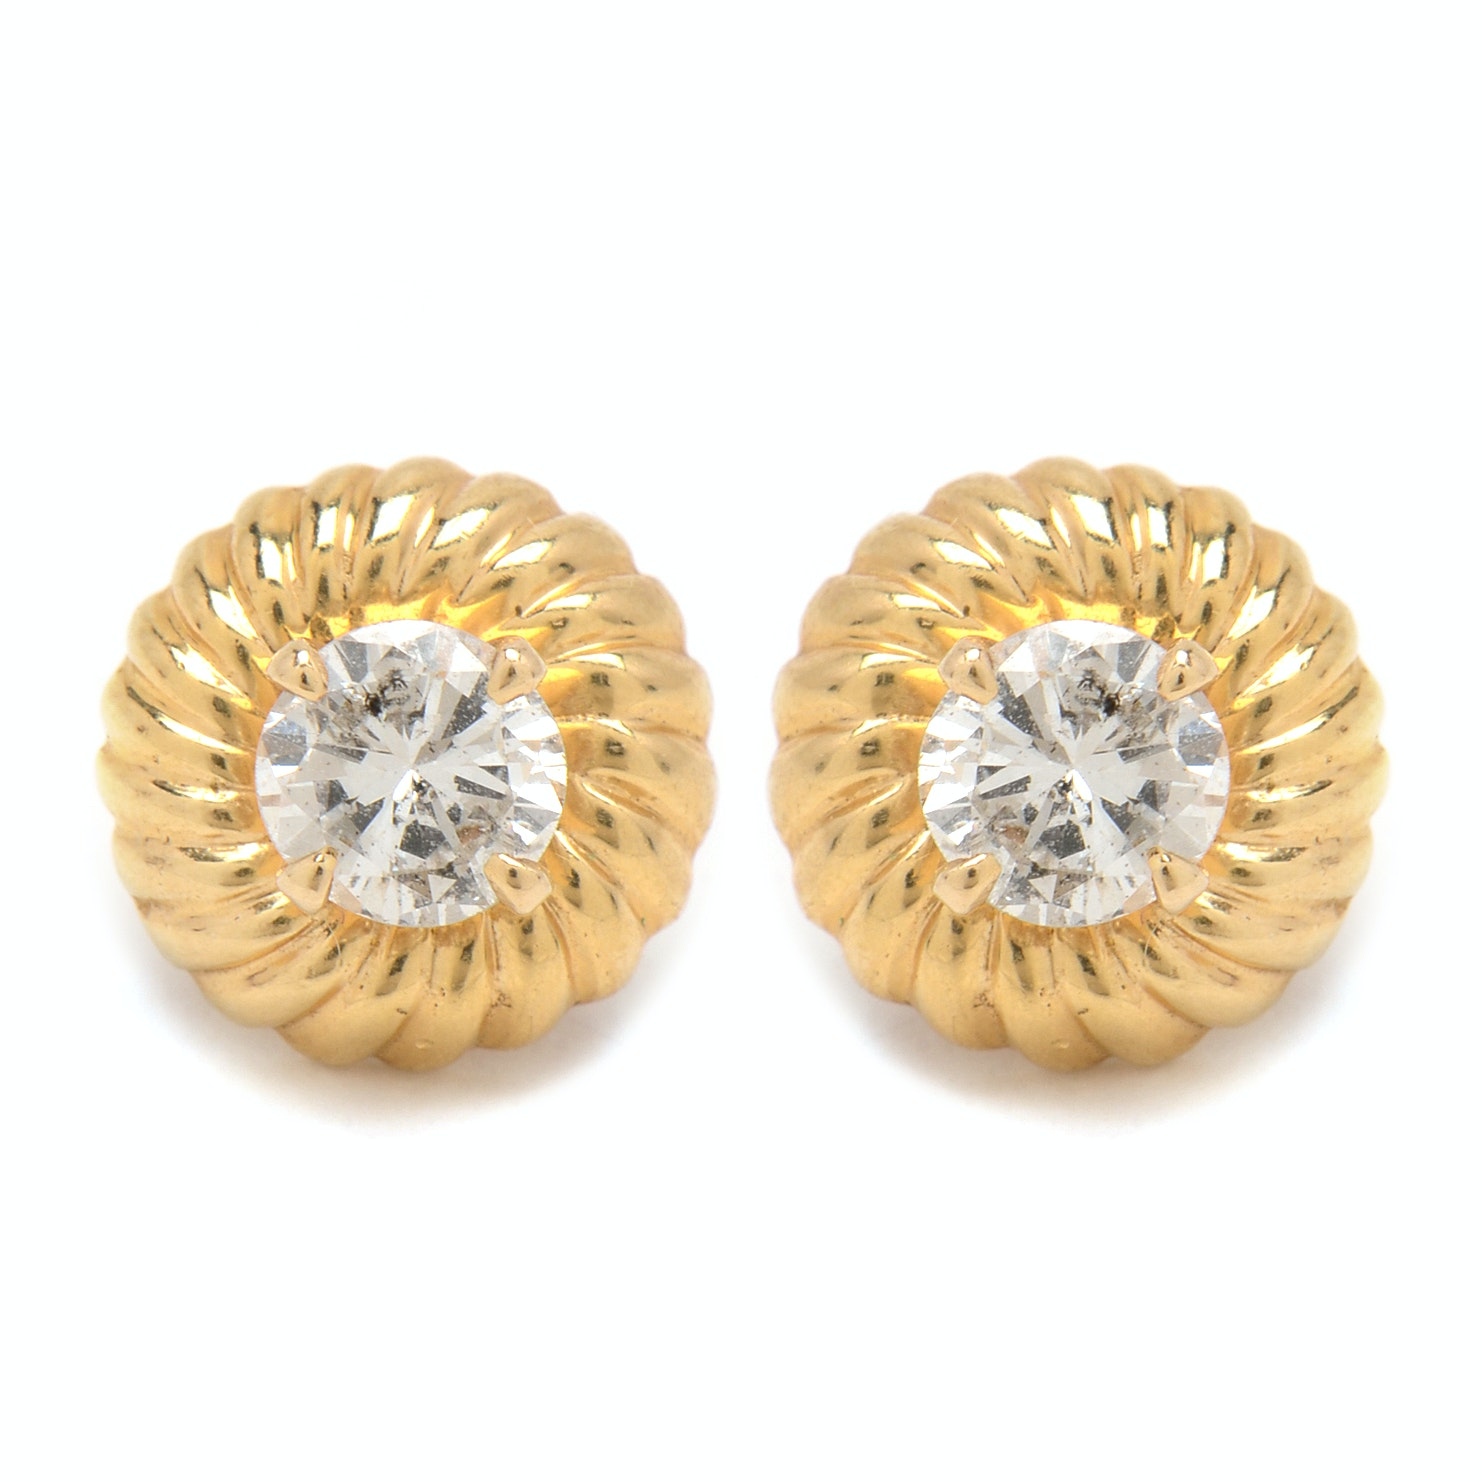 14K Yellow Gold 1.00 CTW Diamond Stud Earrings With Reeded Jackets